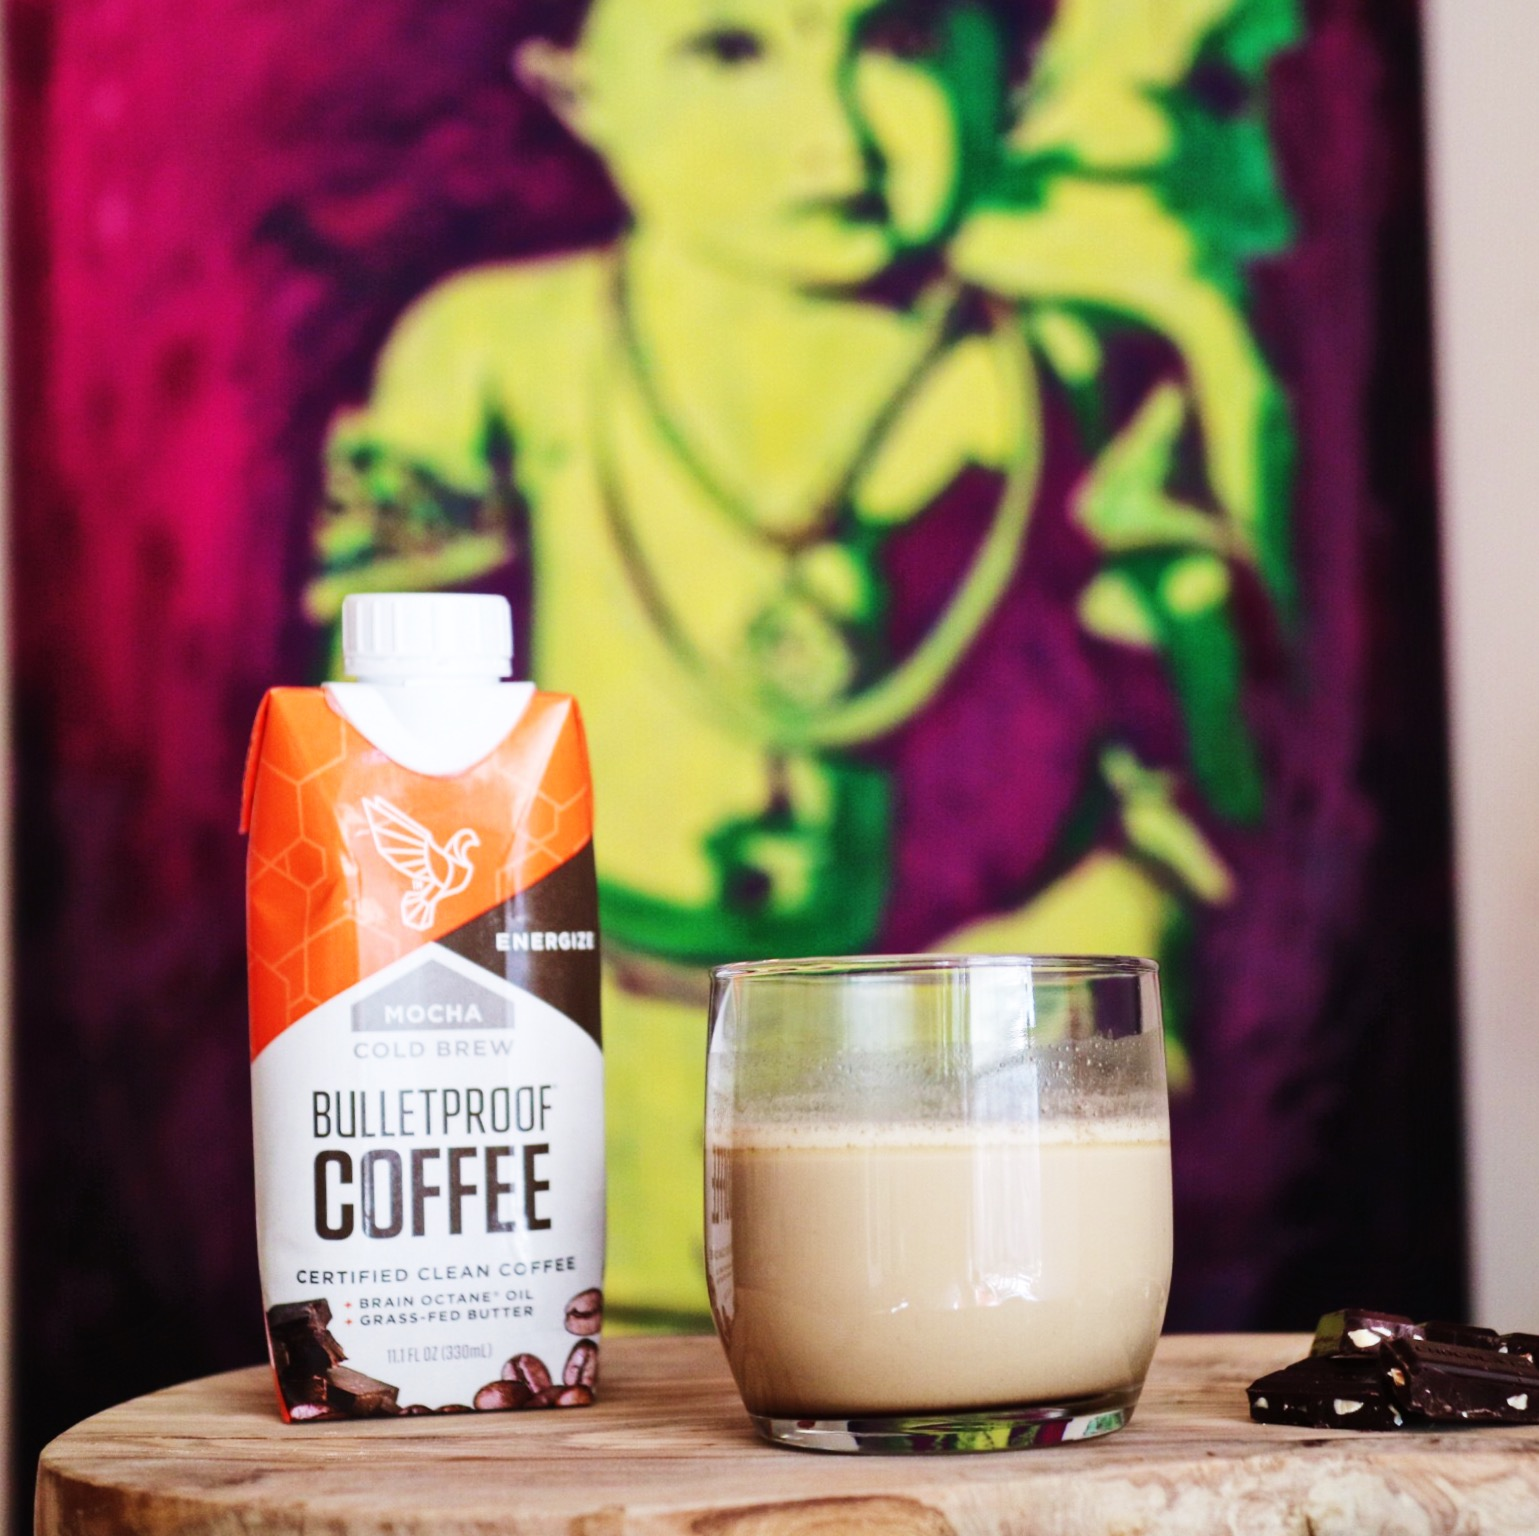 #Cilantroпроверено: Bulletproof coffee